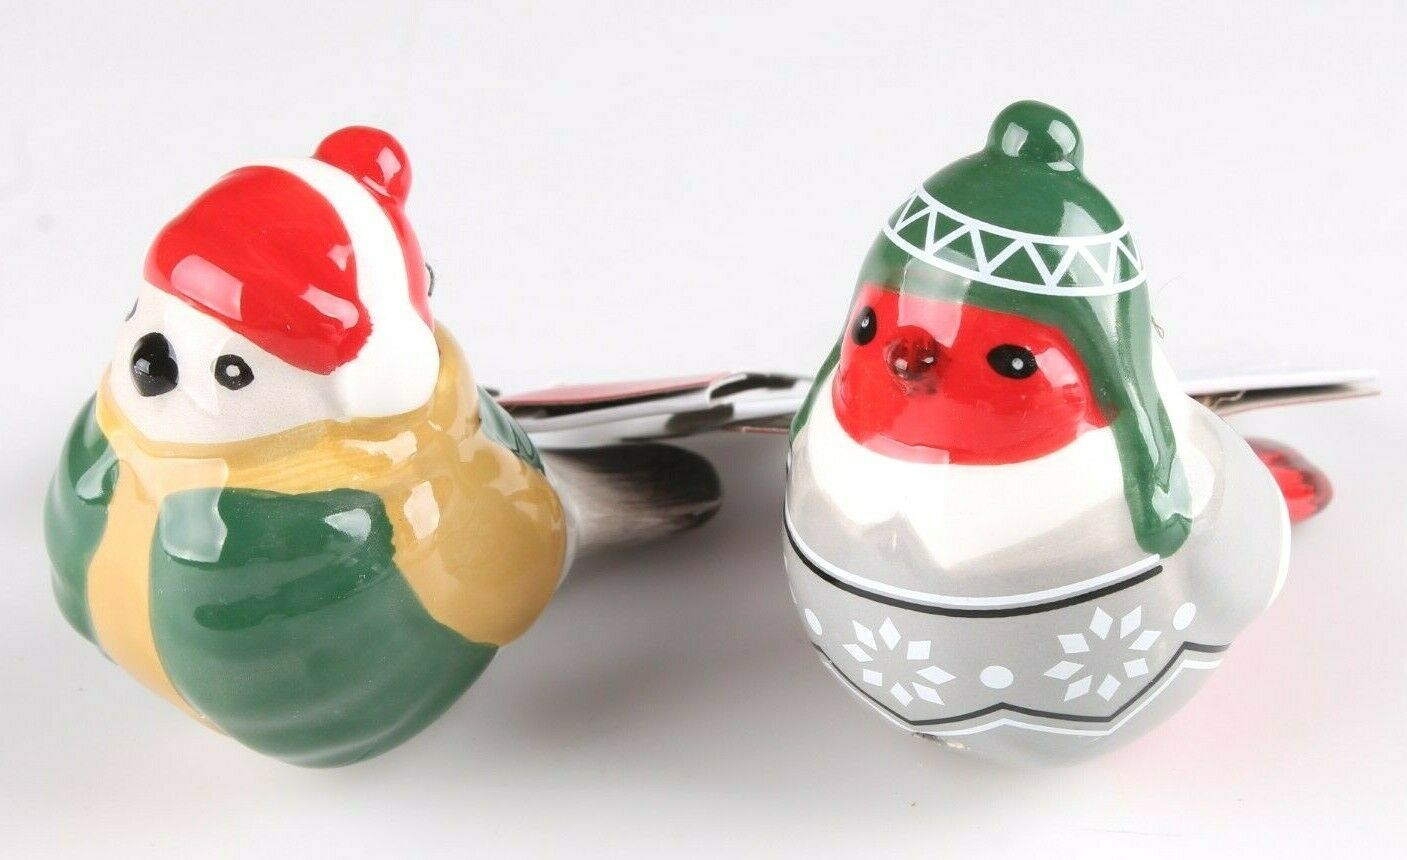 2 Target Wondershop Toymaker Hand Painted Ceramic Bird Ornaments 2018 NWT